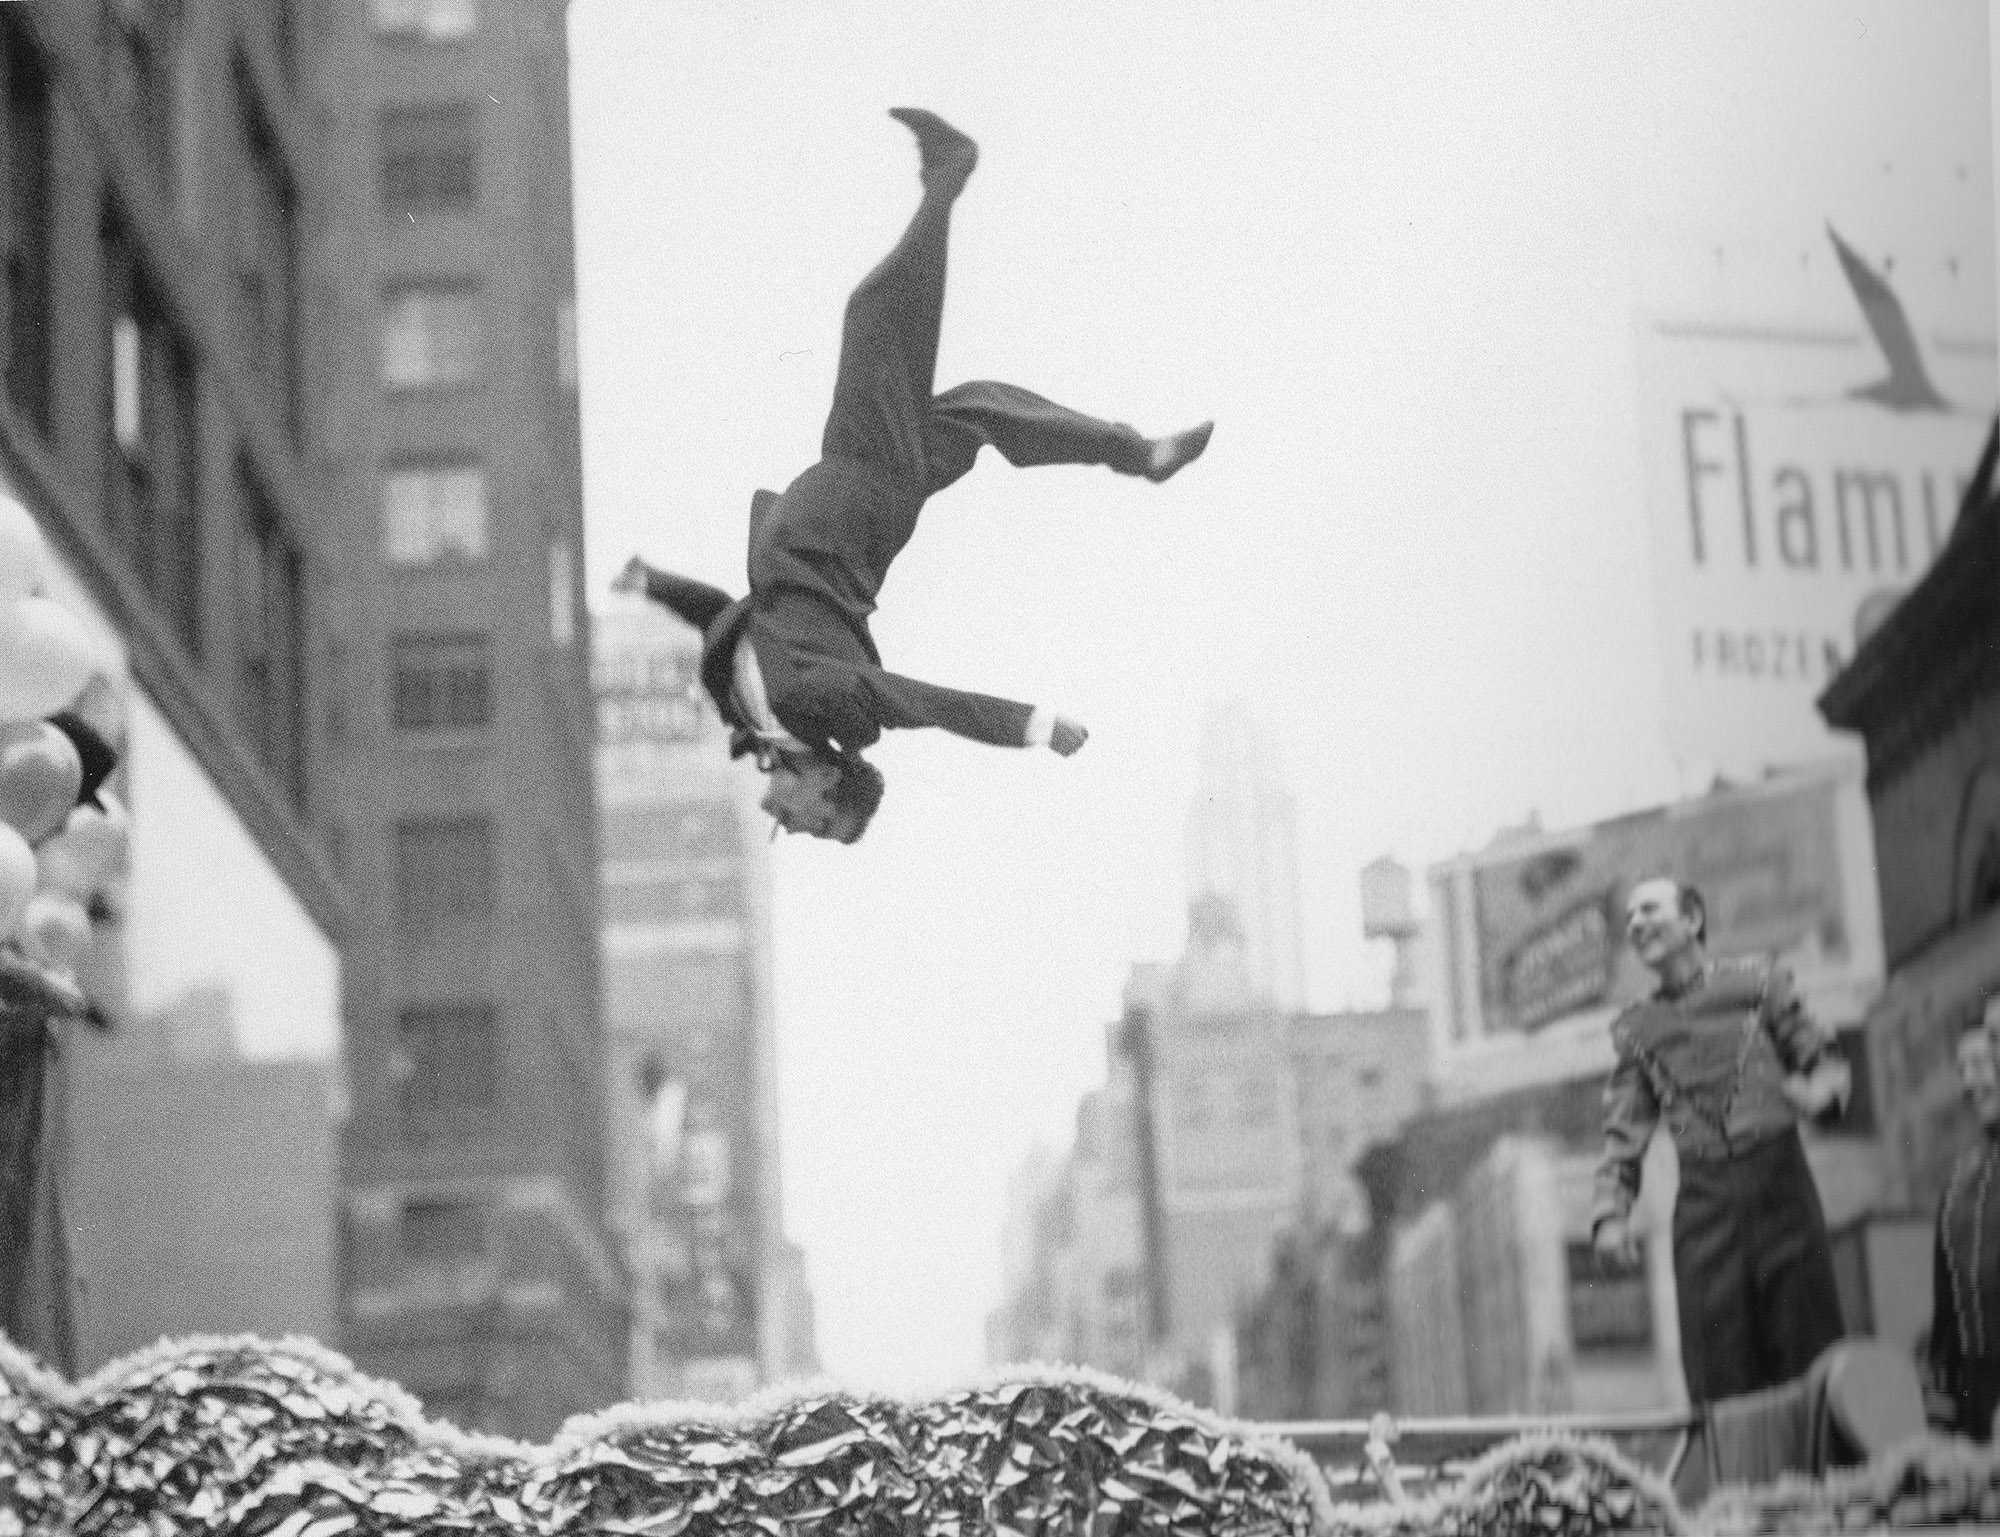 10 Lessons I have learned from Garry Winogrand about photography - Garry Winogrand is an American street photographer and one of my favourite photographers to date. He's well known for his portrayal of American City life and its social issues throughout the 1960's and 70's. Winogrand shot a large body of his work in New York City....